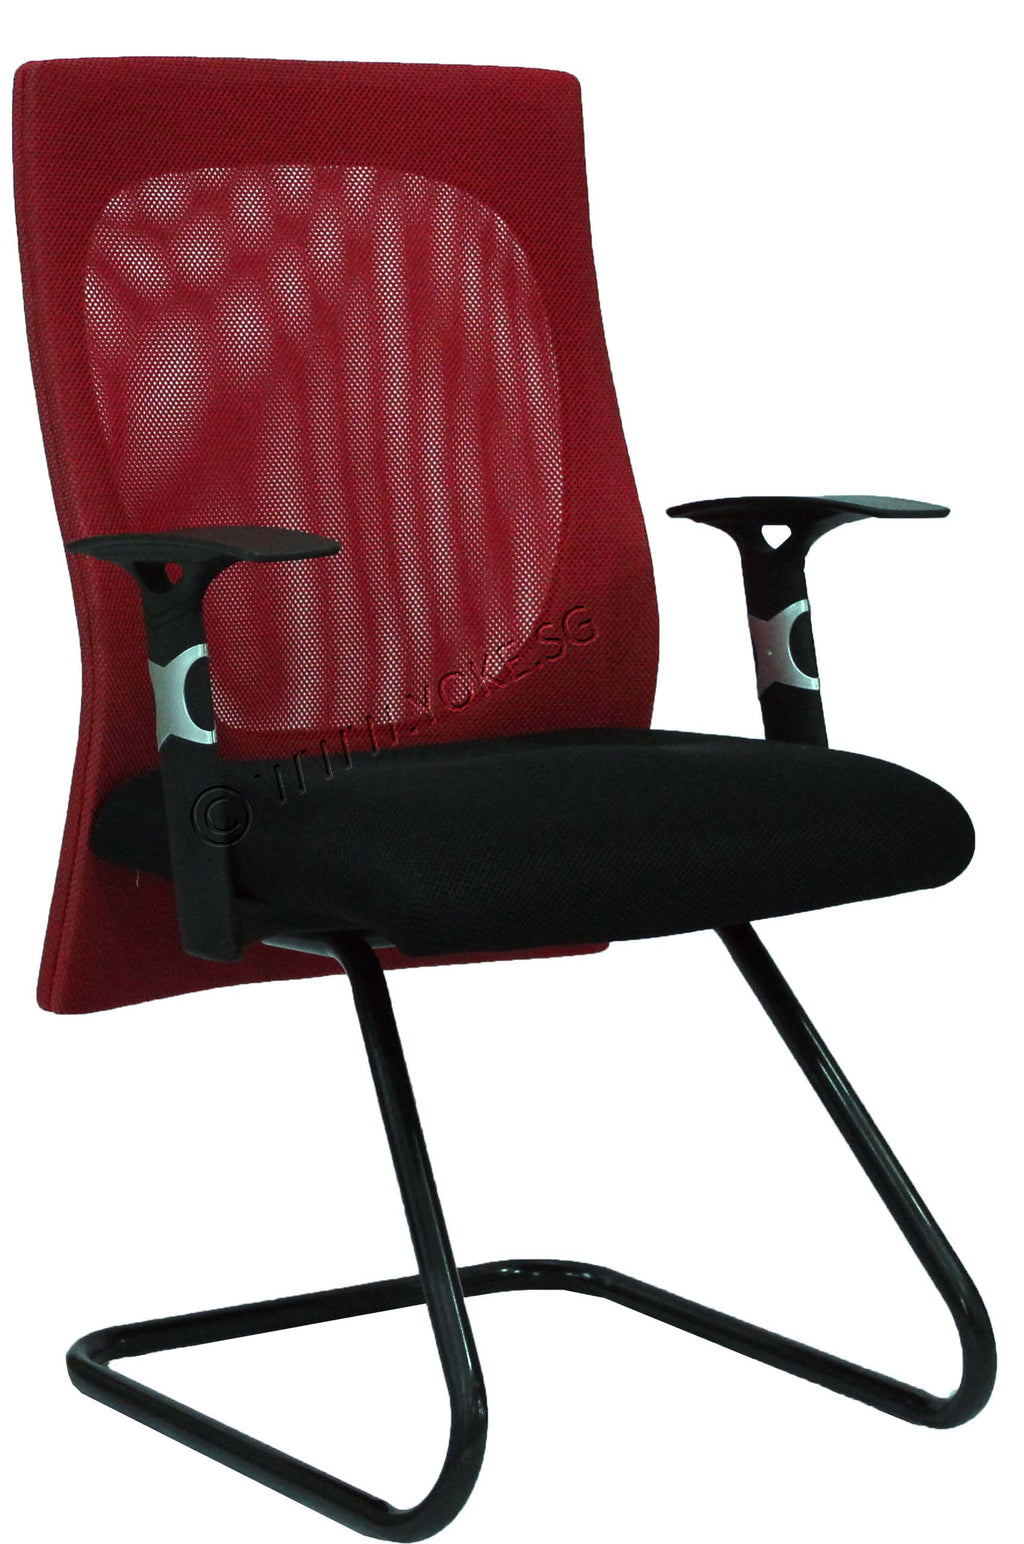 YOE 6C - Cantiliver Mesh Chair